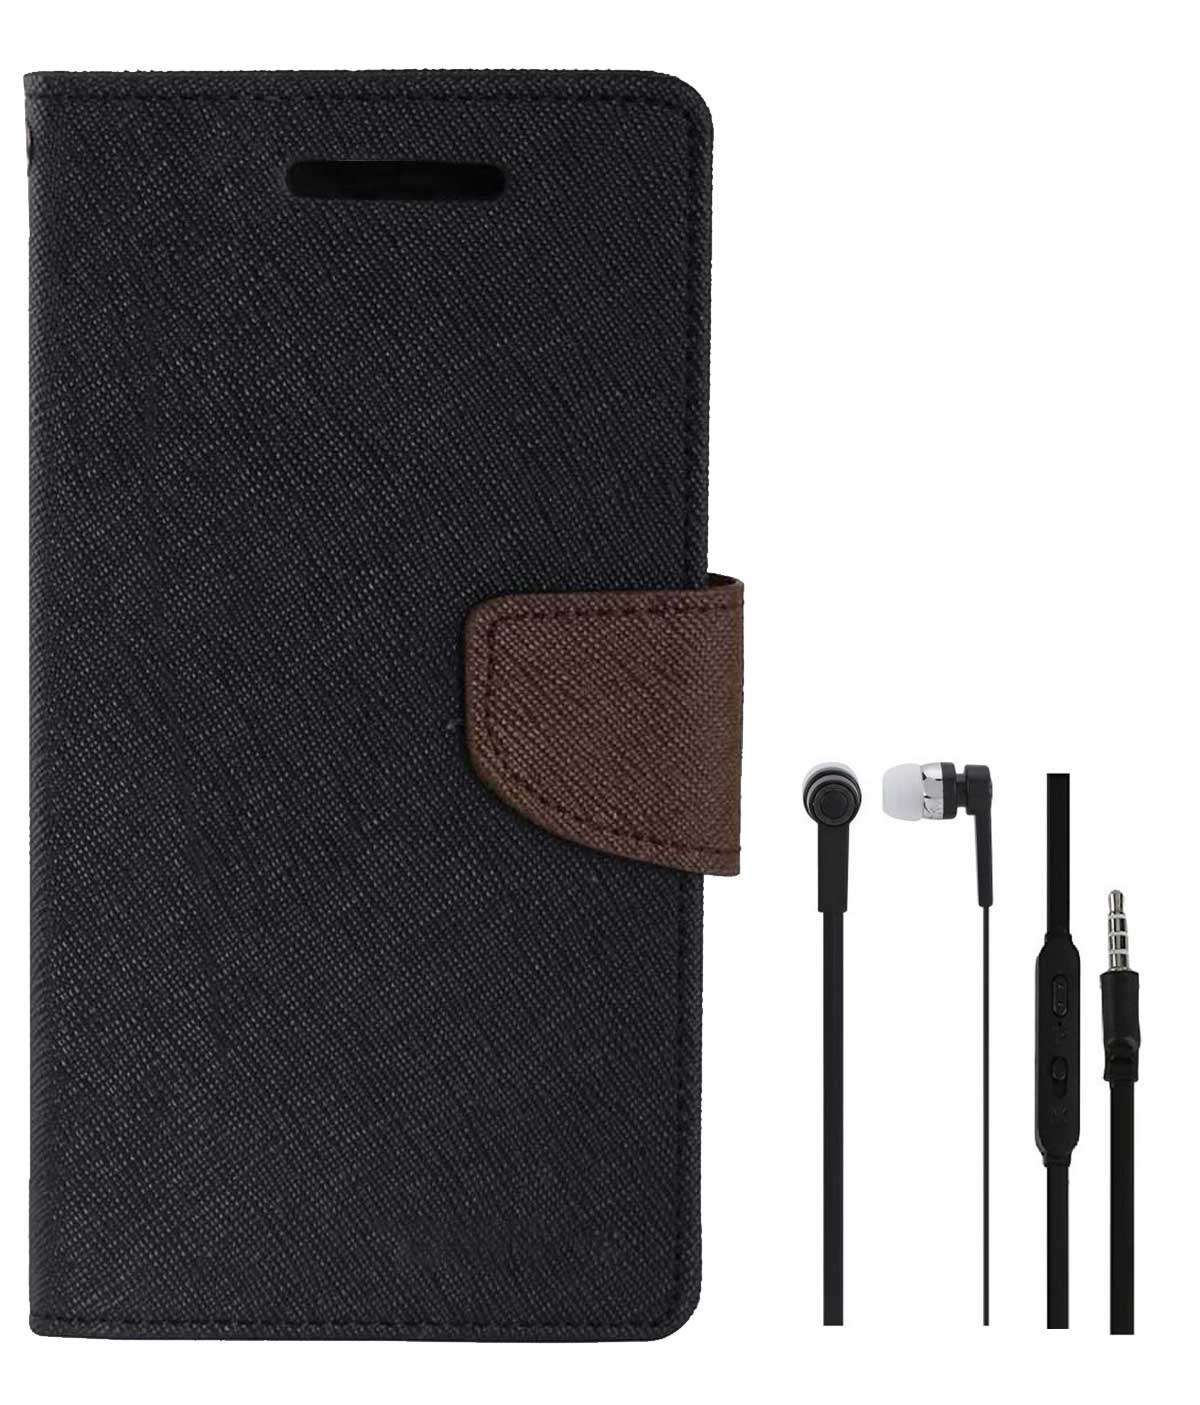 TBZ Diary Wallet Flip Cover Case for Samsung Galaxy On Max with Earphone  Black Brown